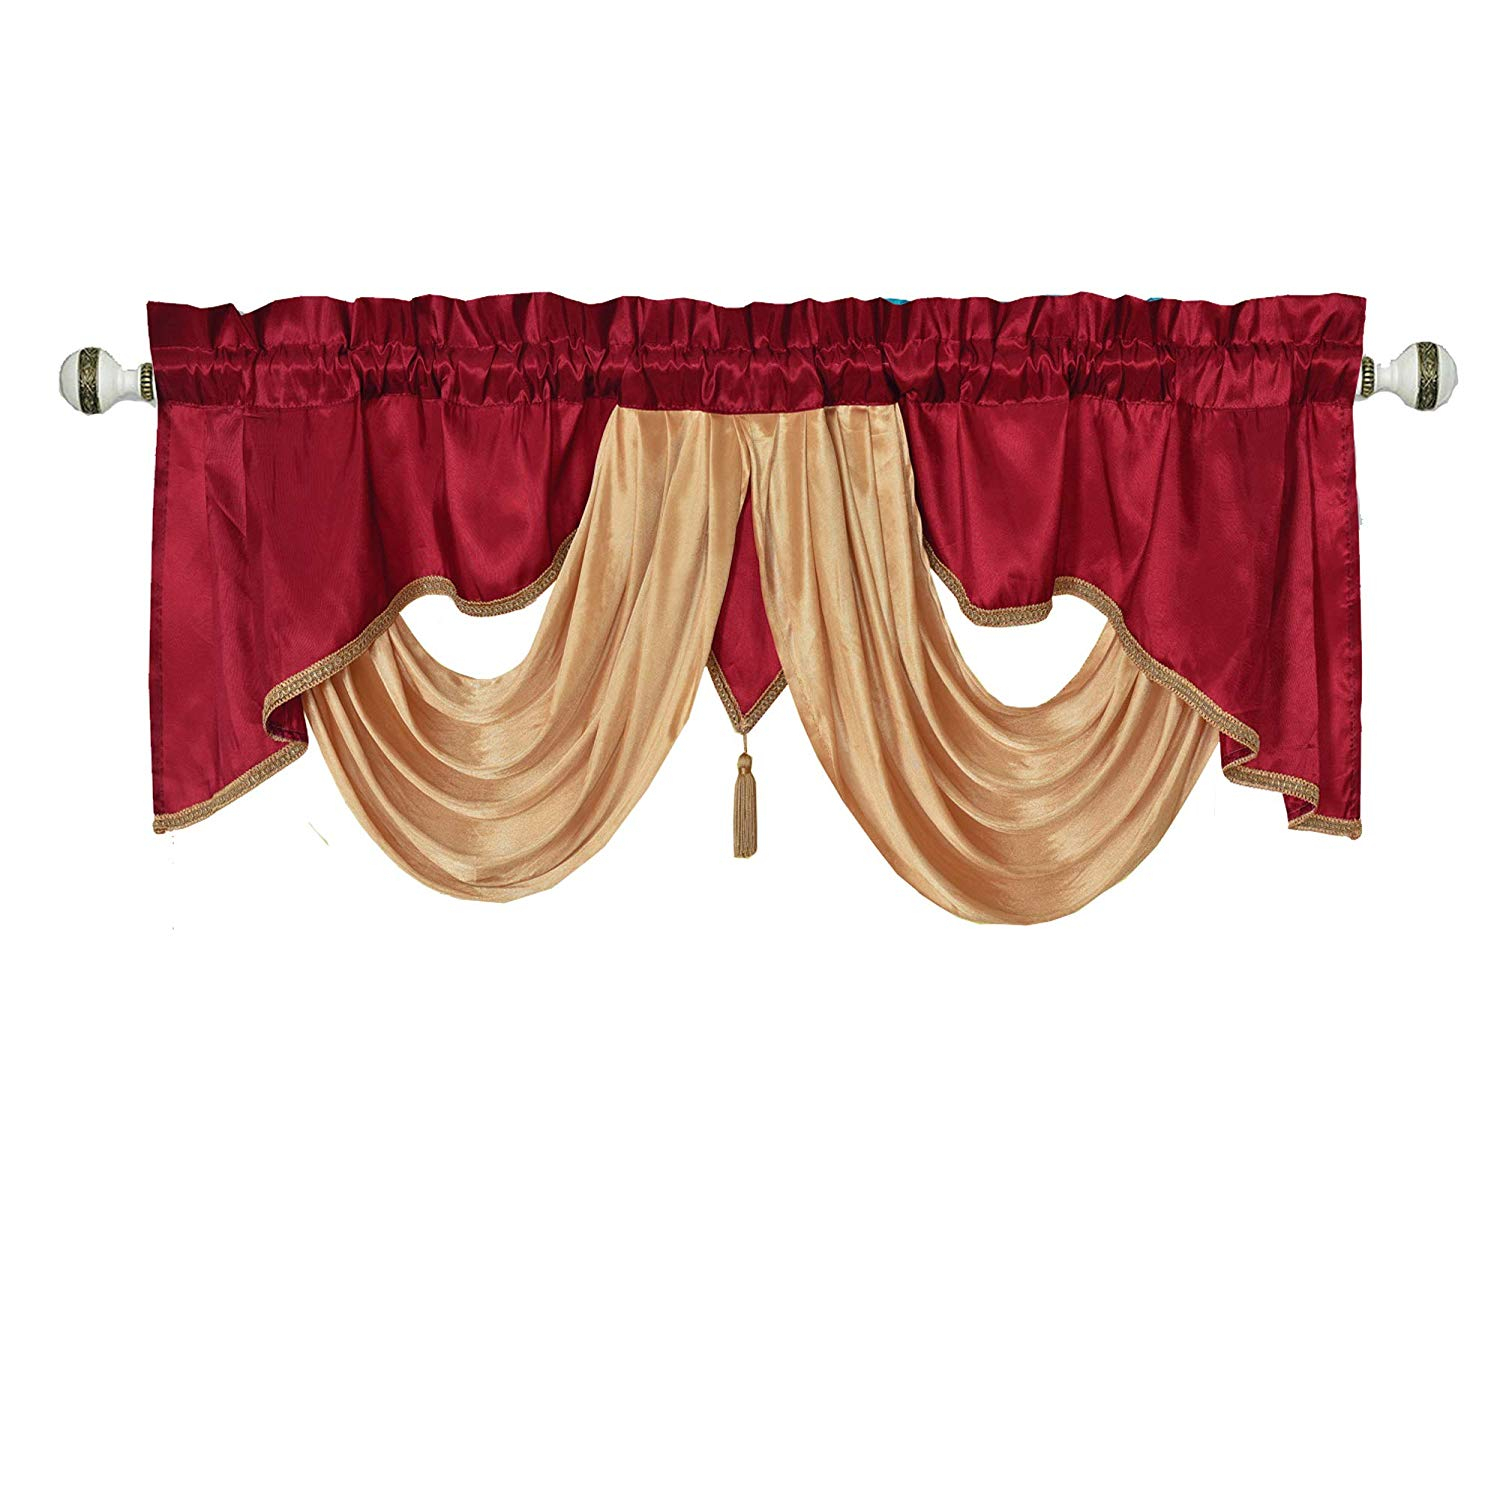 Stunning Victory Swag Valance Count Set Fandangle Waterfall Intended For Kitchen Burgundy/white Curtain Sets (View 20 of 20)